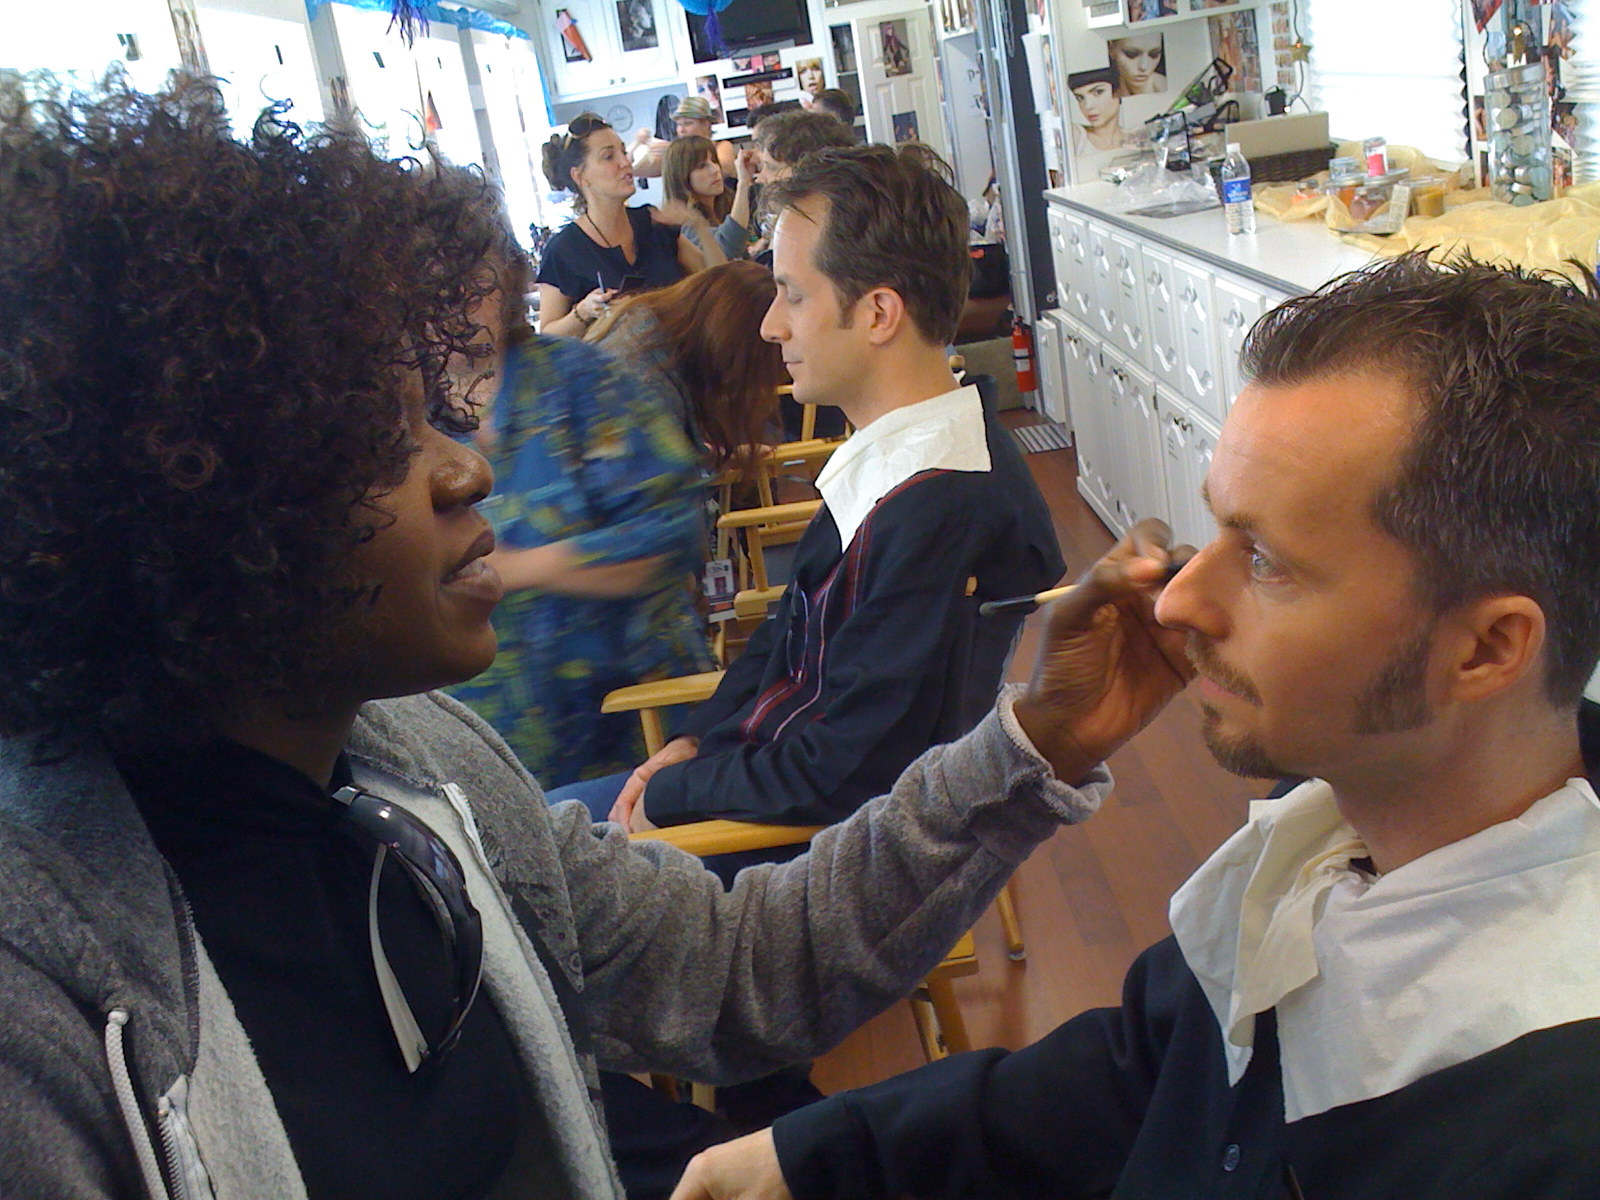 Dancing With The Stars makeup room.